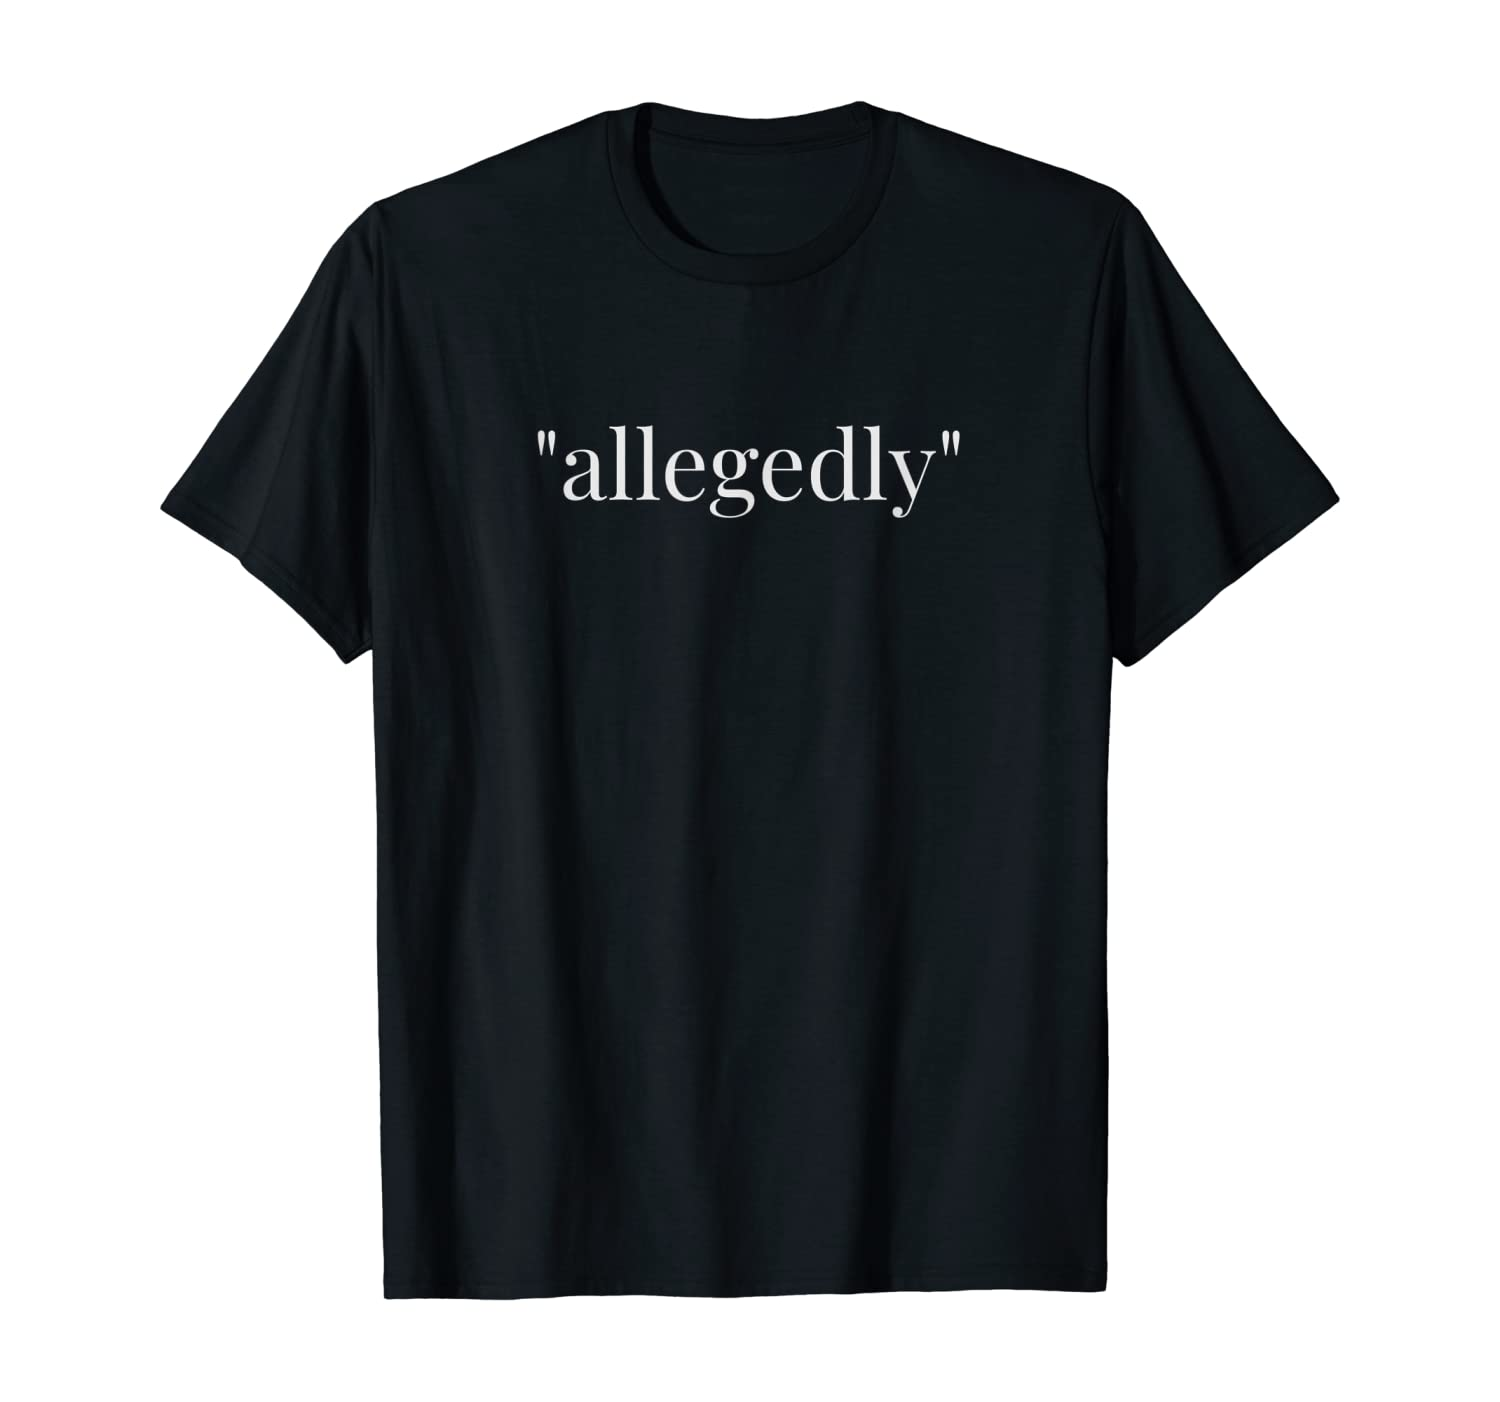 Allegedly T Shirt Funny Lawyer Tshirt Christmas Gifts